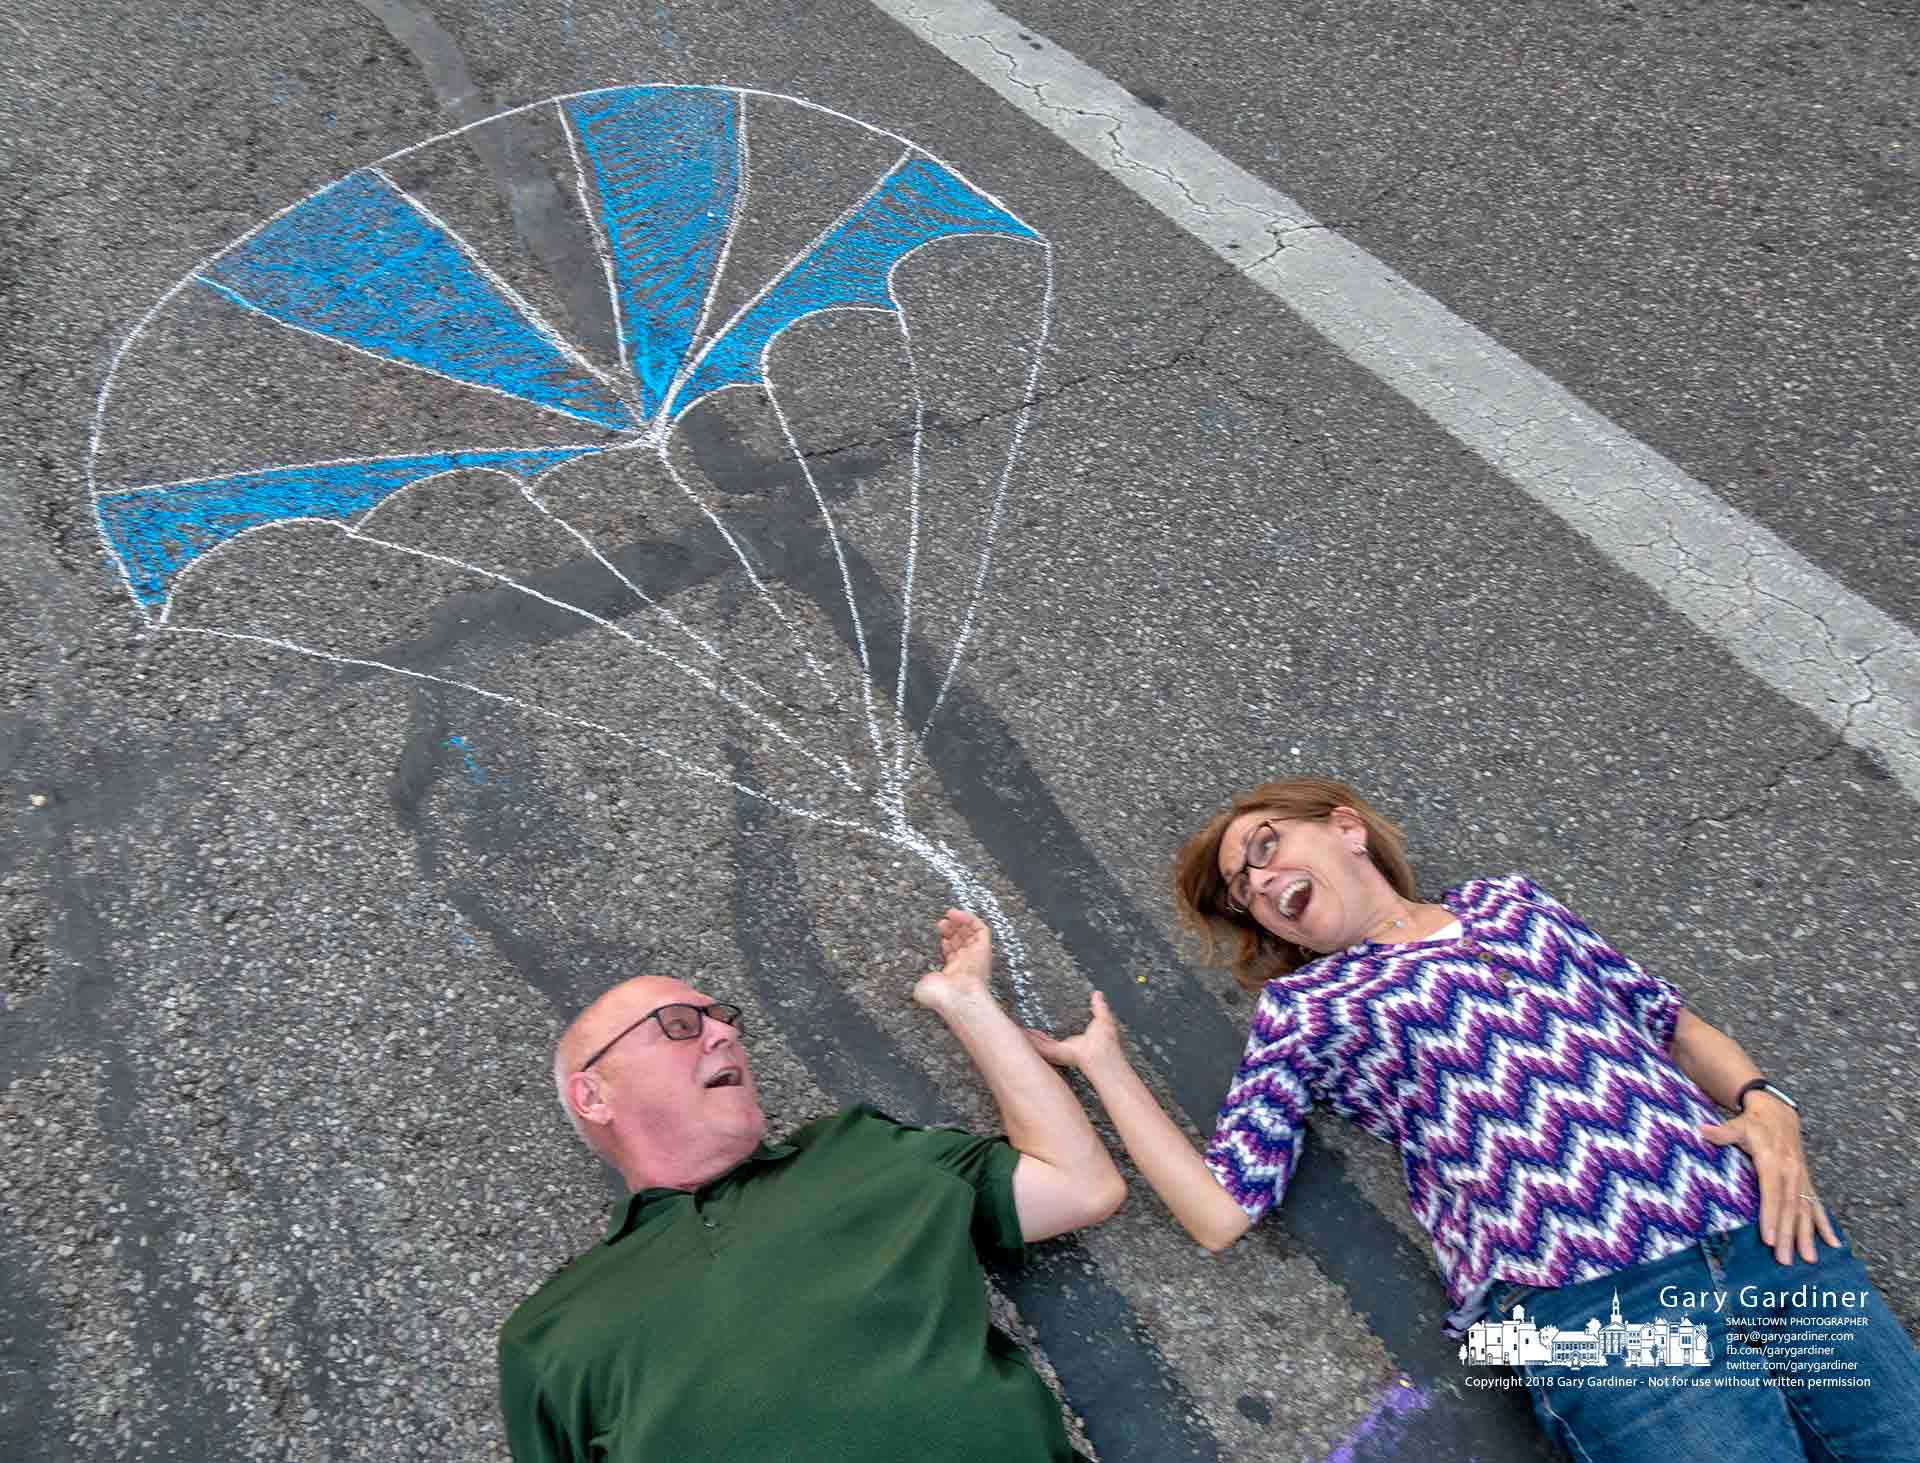 A pair of older kids lies in the middle Statete Street pretending to be suspended in midair by a make-believe parachute sketched in chalk during Fourth Friday in Uptown Westerville. My Final Photo for May 25, 2018.